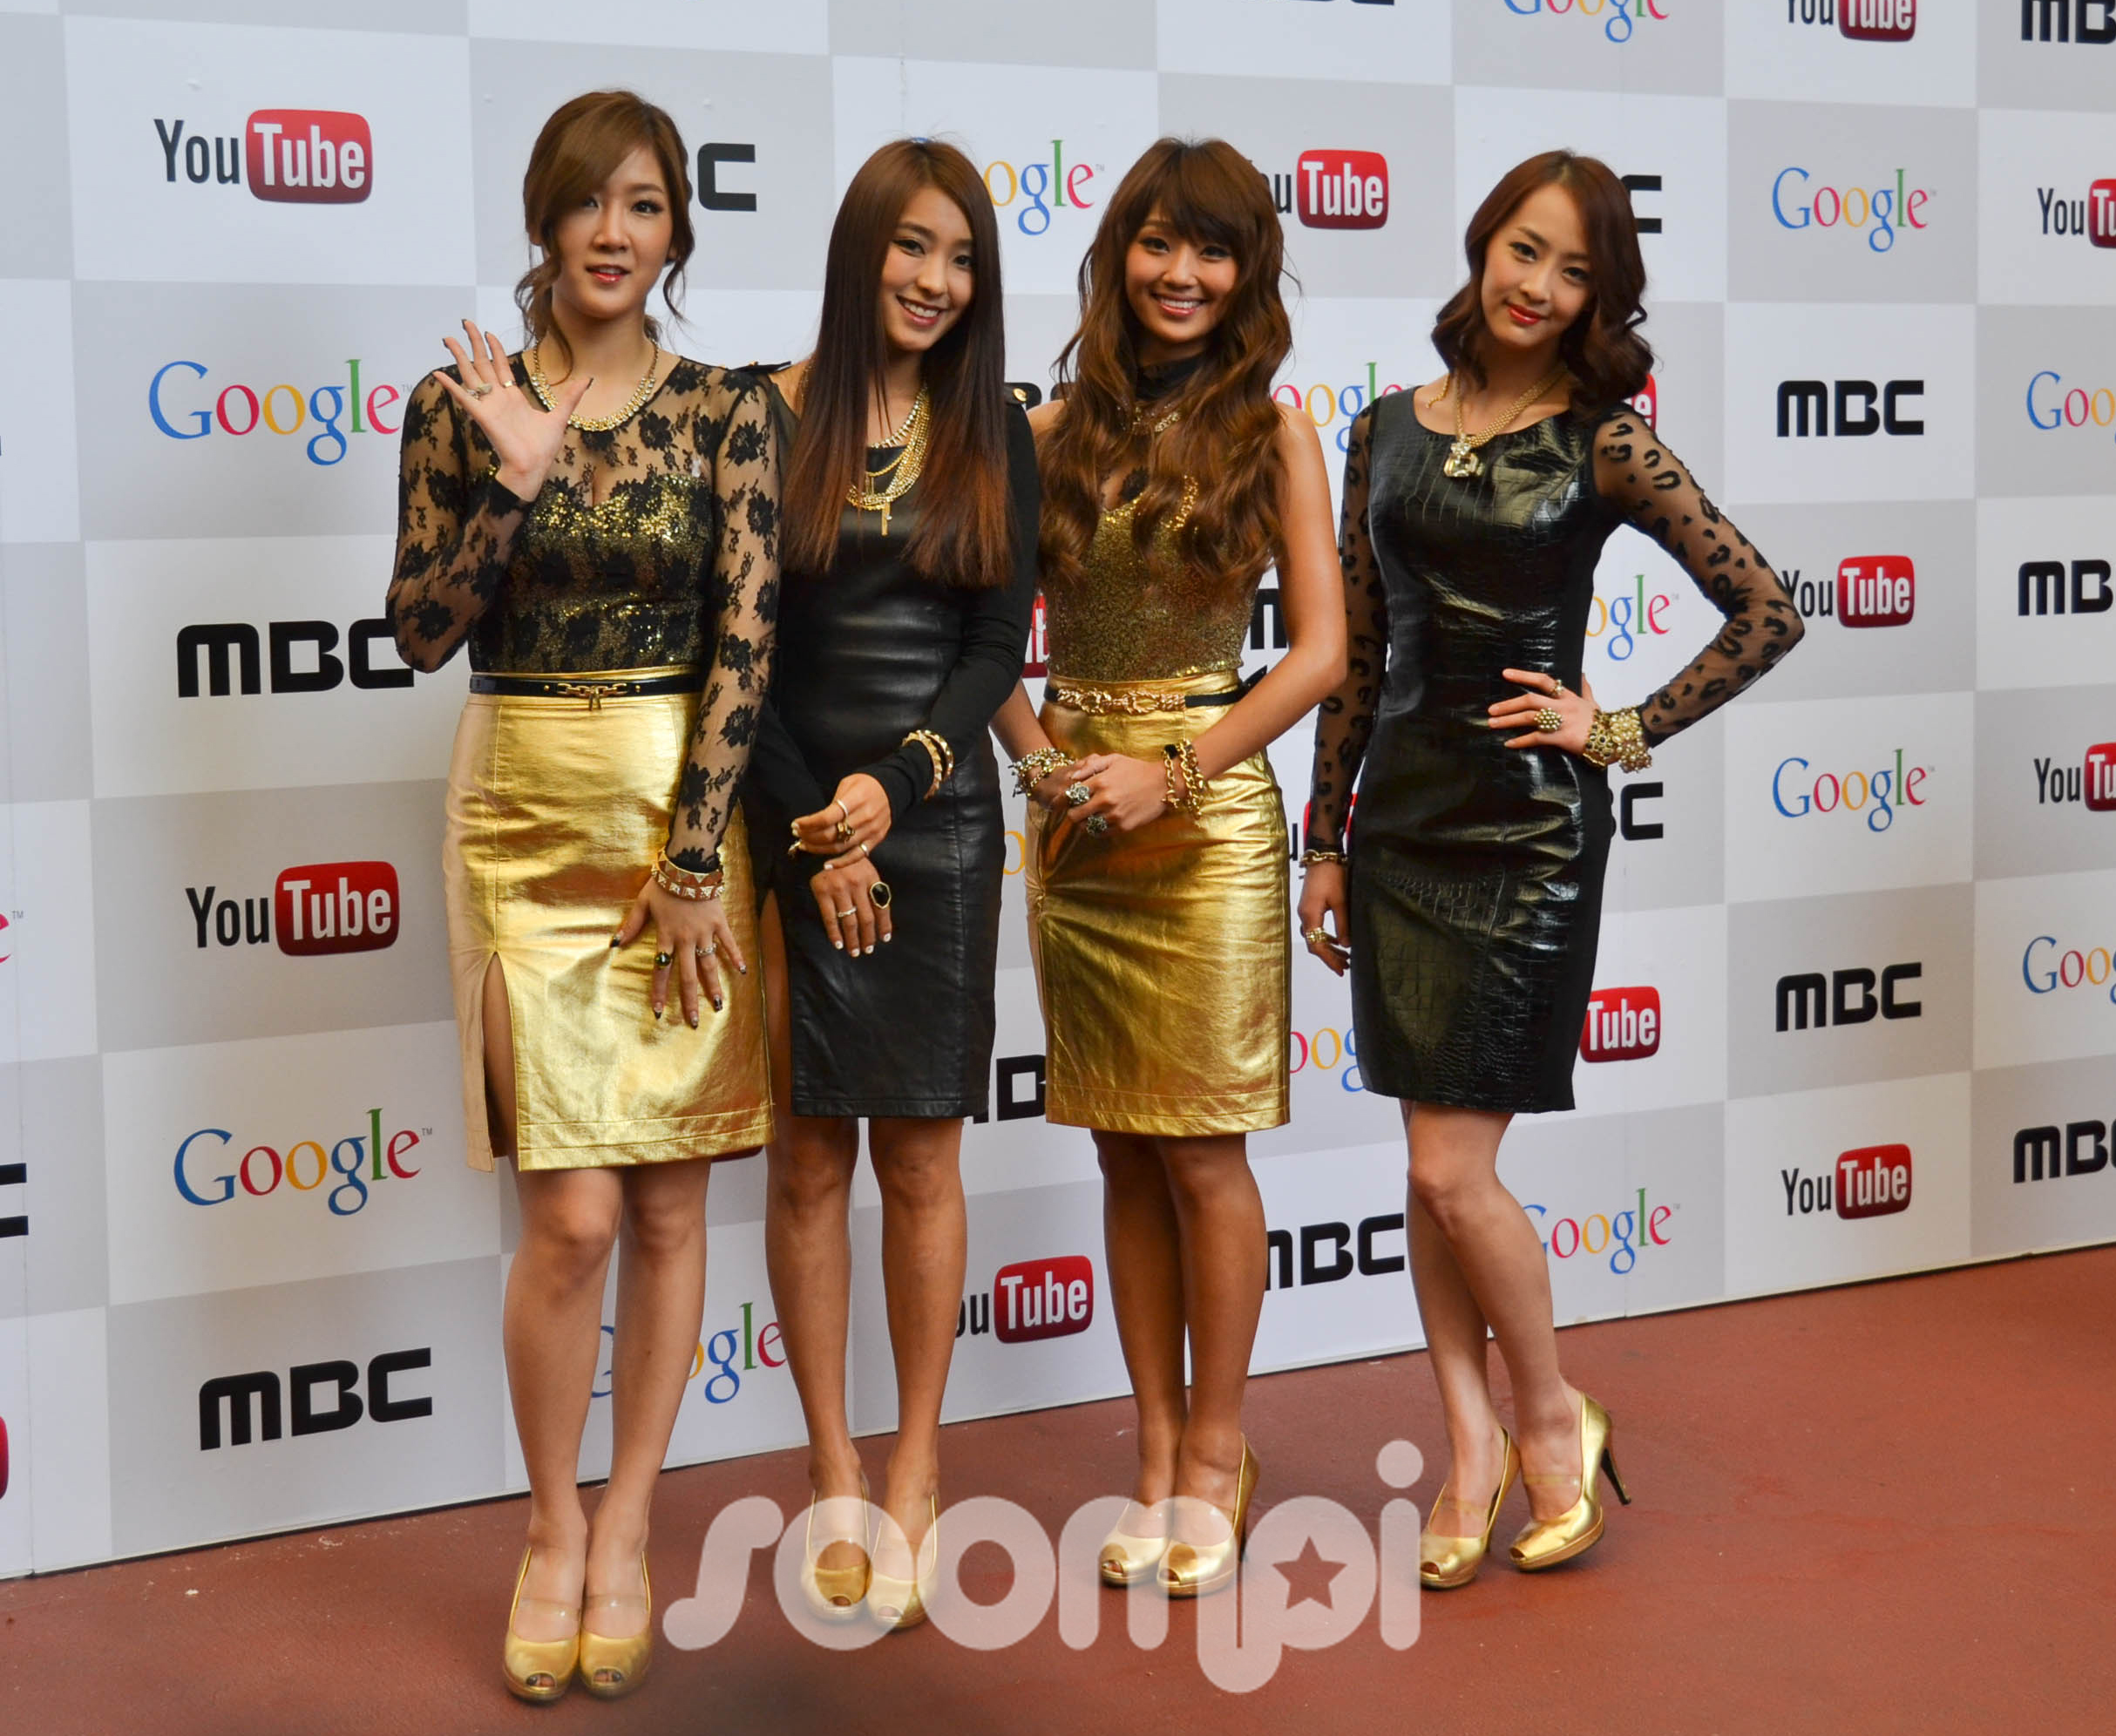 Google Red Carpet